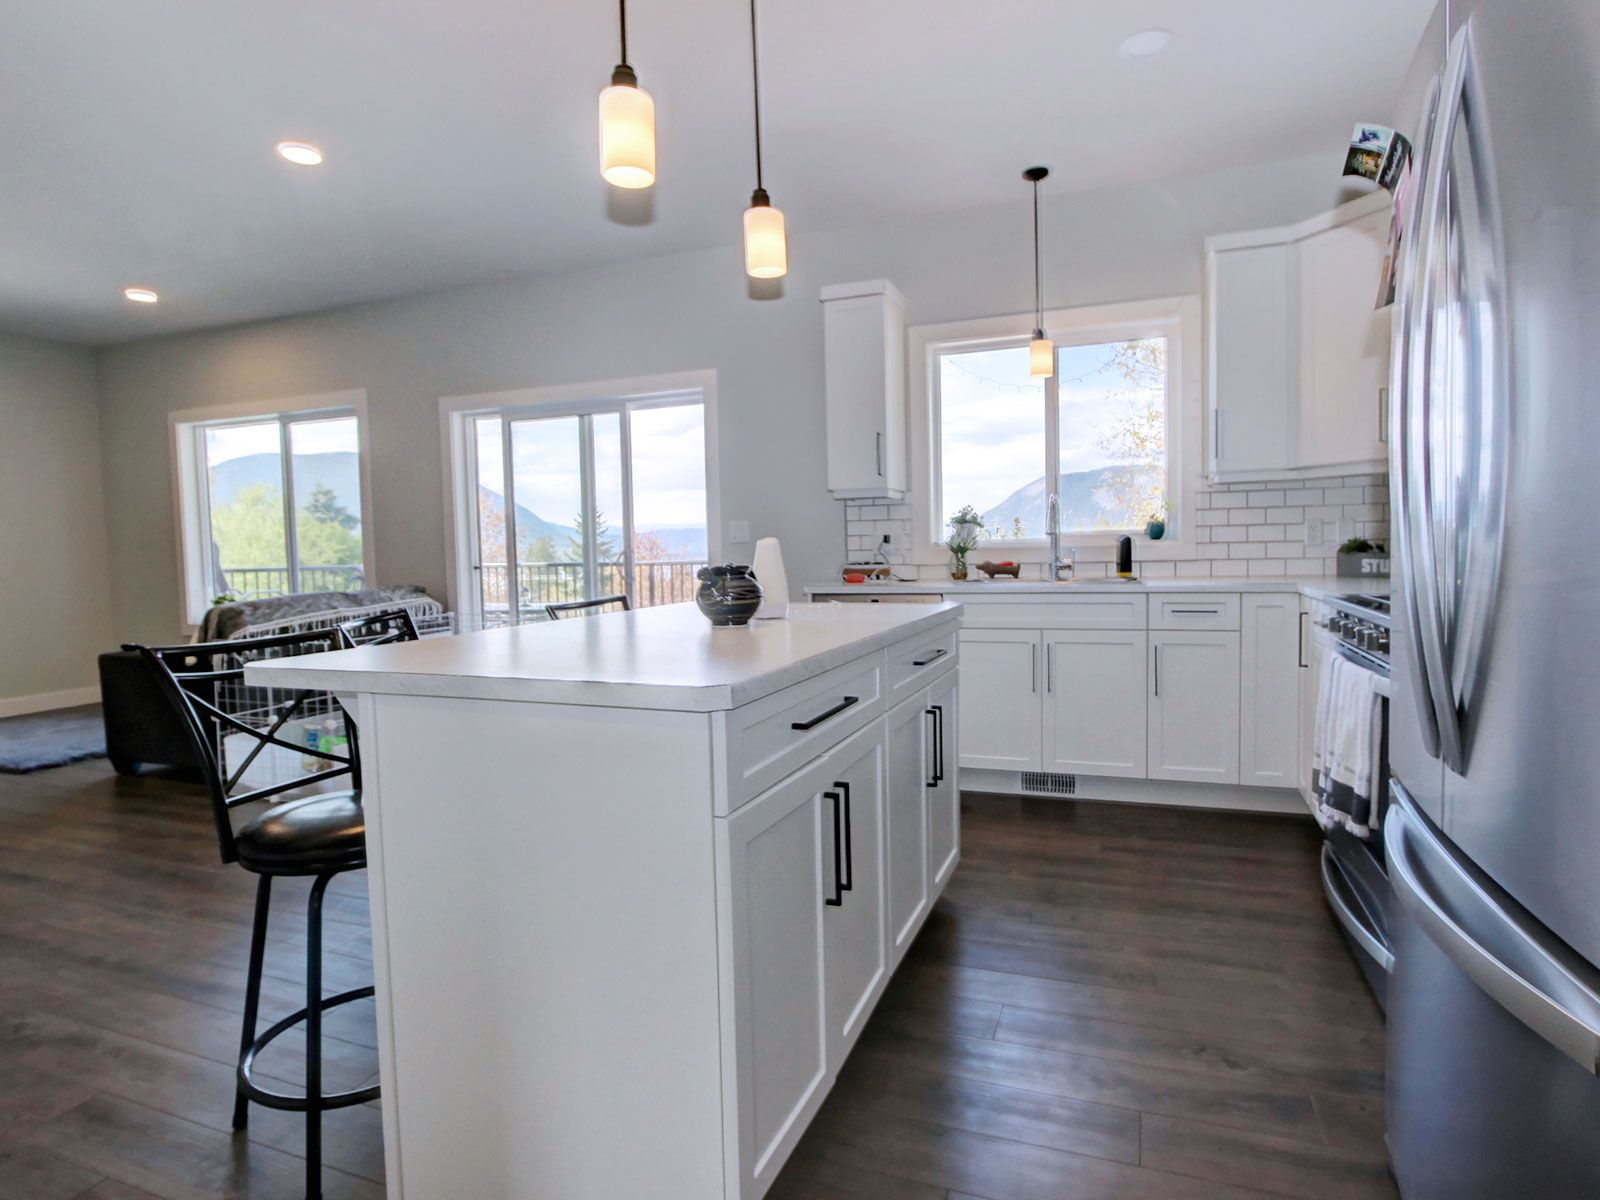 Photo 23: Photos: 1920 SE Okanagan Avenue in Salmon Arm: South East Salmon Arm House for sale : MLS®# 10204567